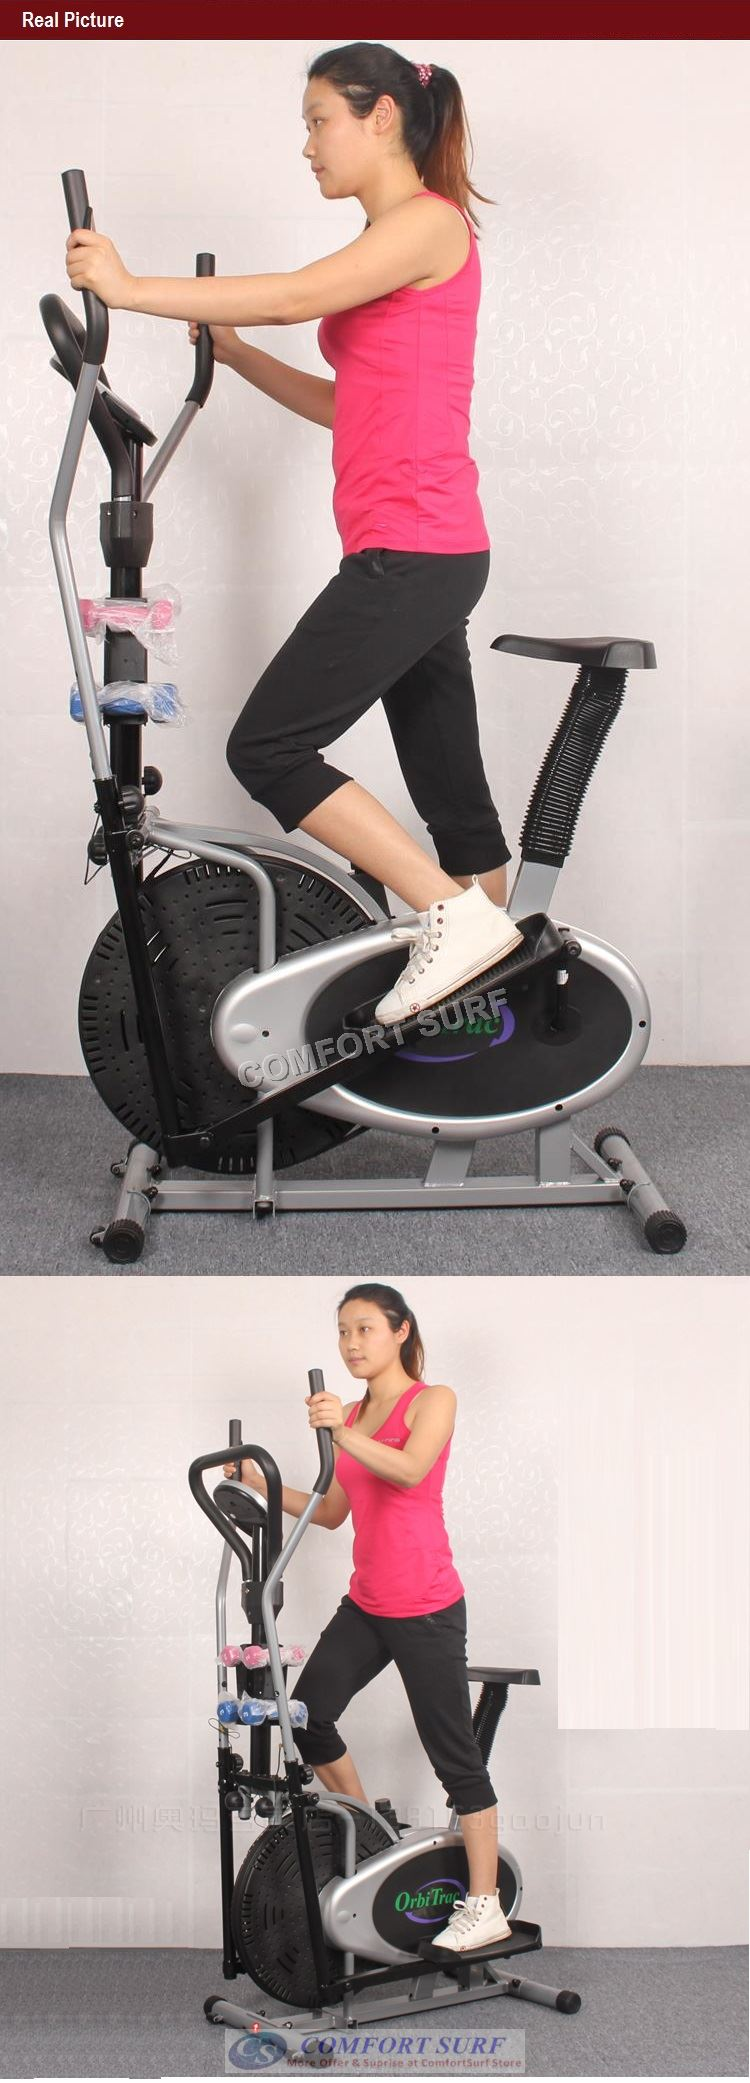 Multifunctional Orbitreck Air Elliptical Cross Trainer Twister Cardio & Fitness Body Workout With Twister / Fitness Dumbbells / Seat / LCD Display Exercise Bike